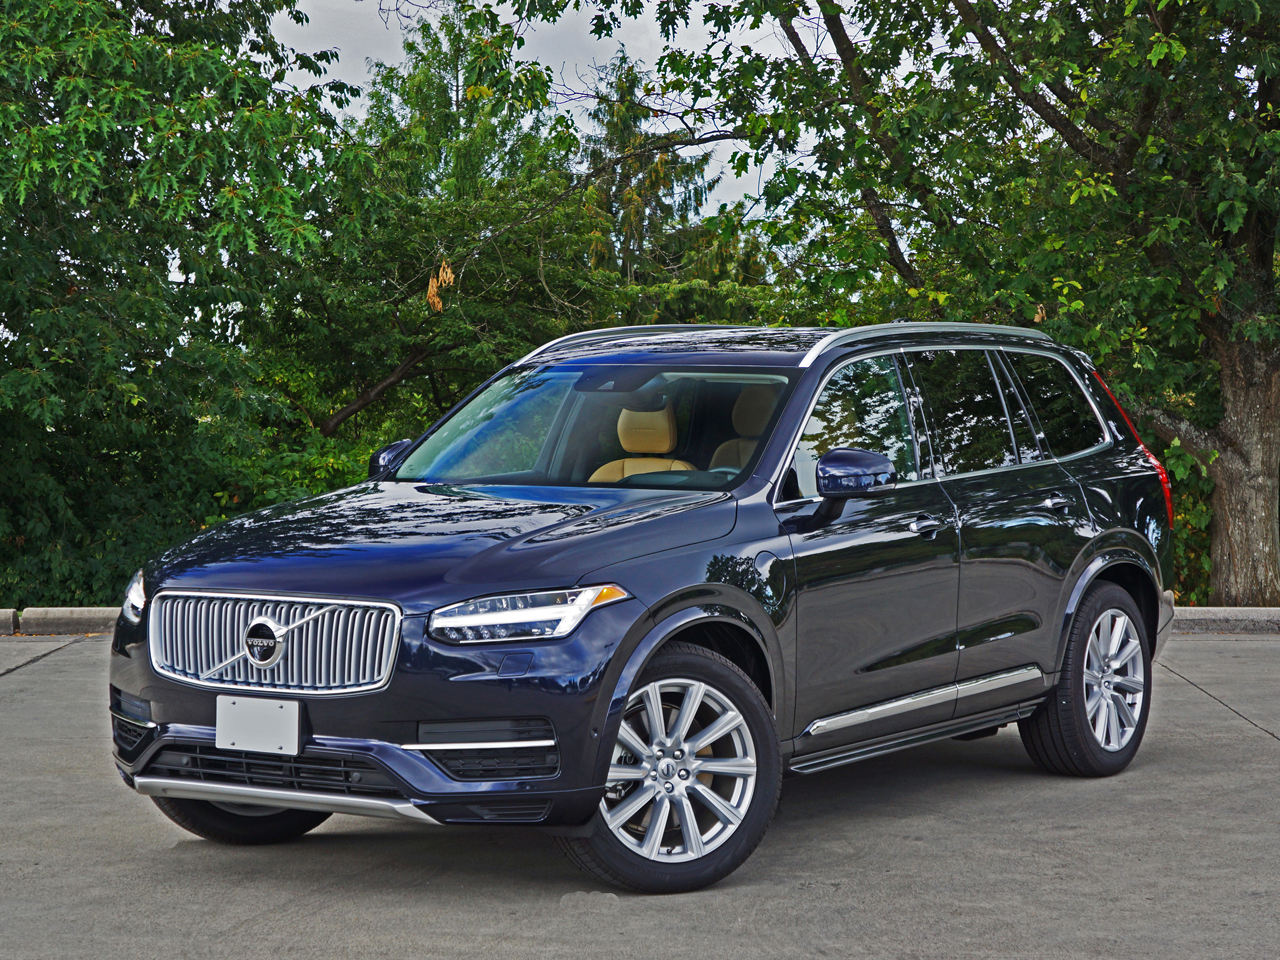 2017 Volvo Xc90 T8 Twin Engine Eawd Inscription Road Test Review